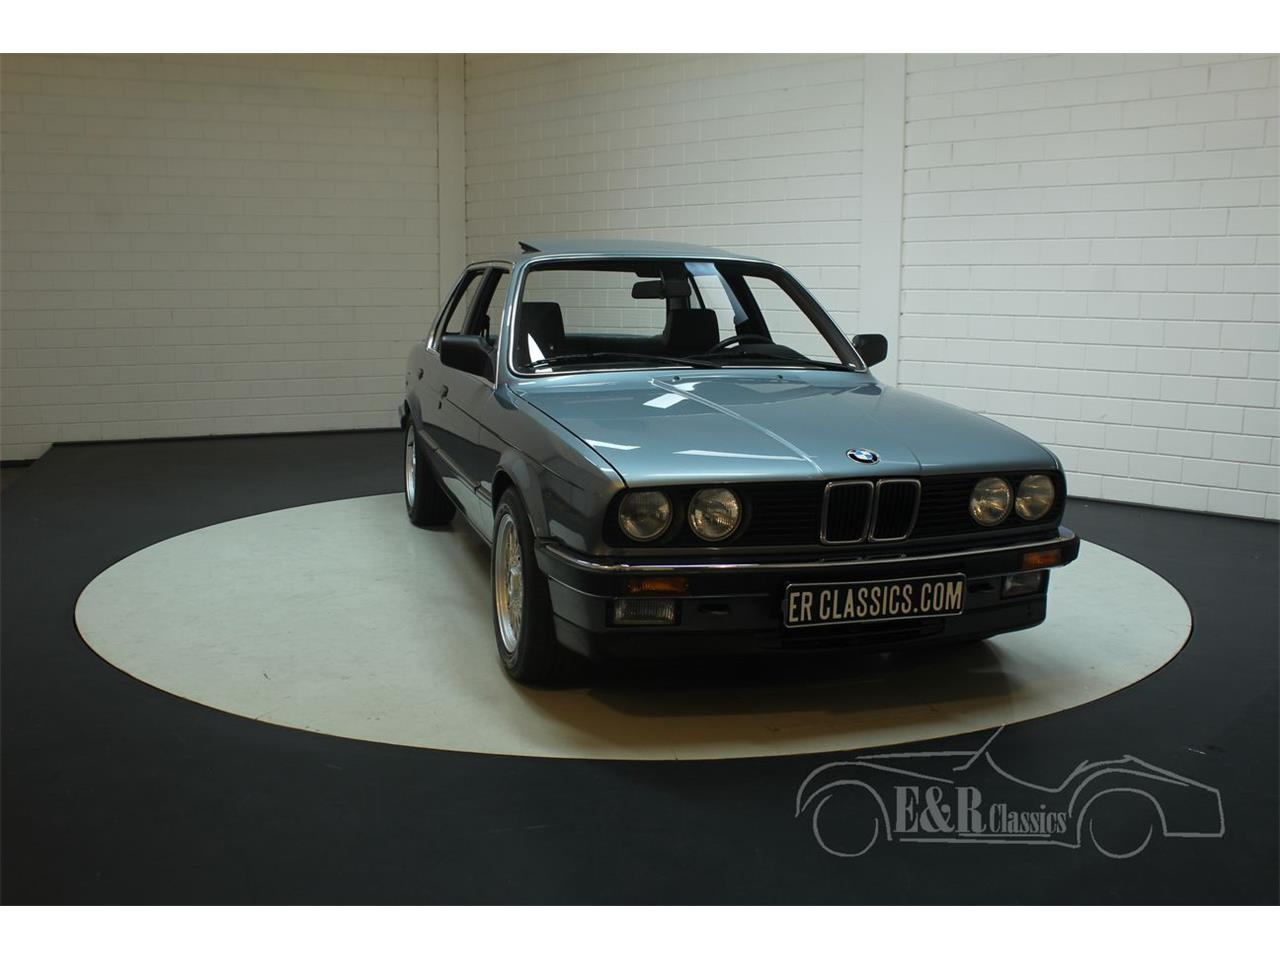 Large Picture of 1986 BMW 325i located in - Keine Angabe - - $33,850.00 - PGT1